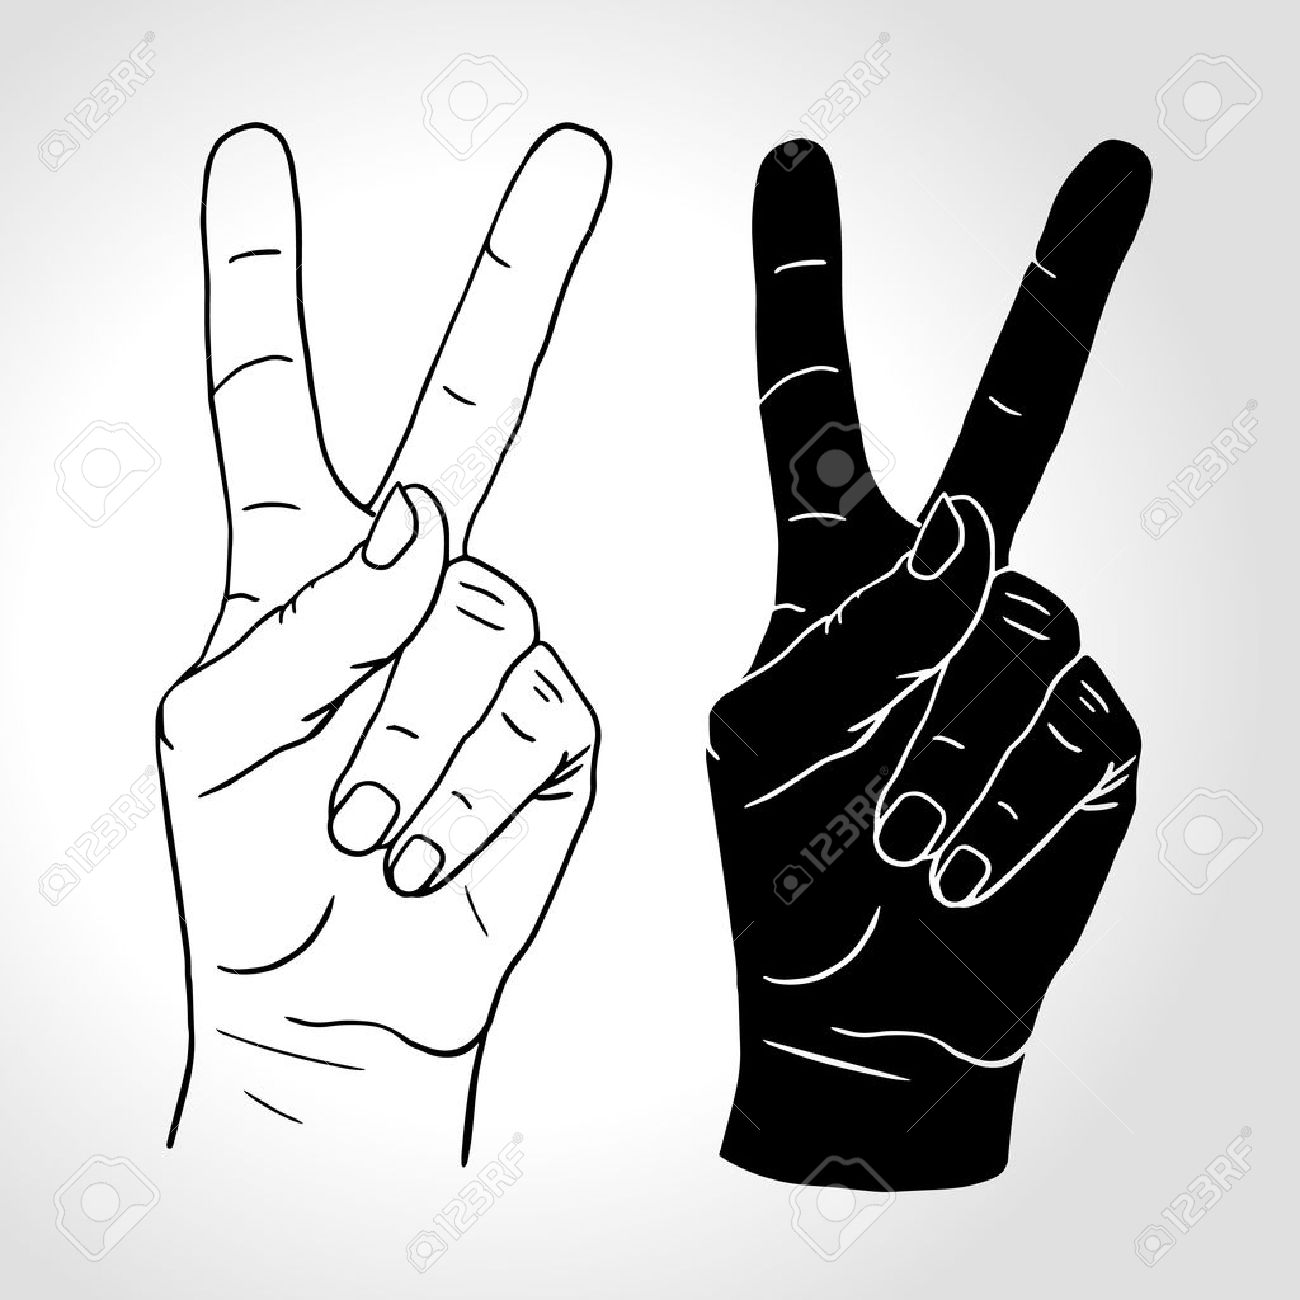 illustration: Hand with two fingers up in the peace or victory symbol. Also the sign for the letter V in sign language. Isolated on white. - 47558883